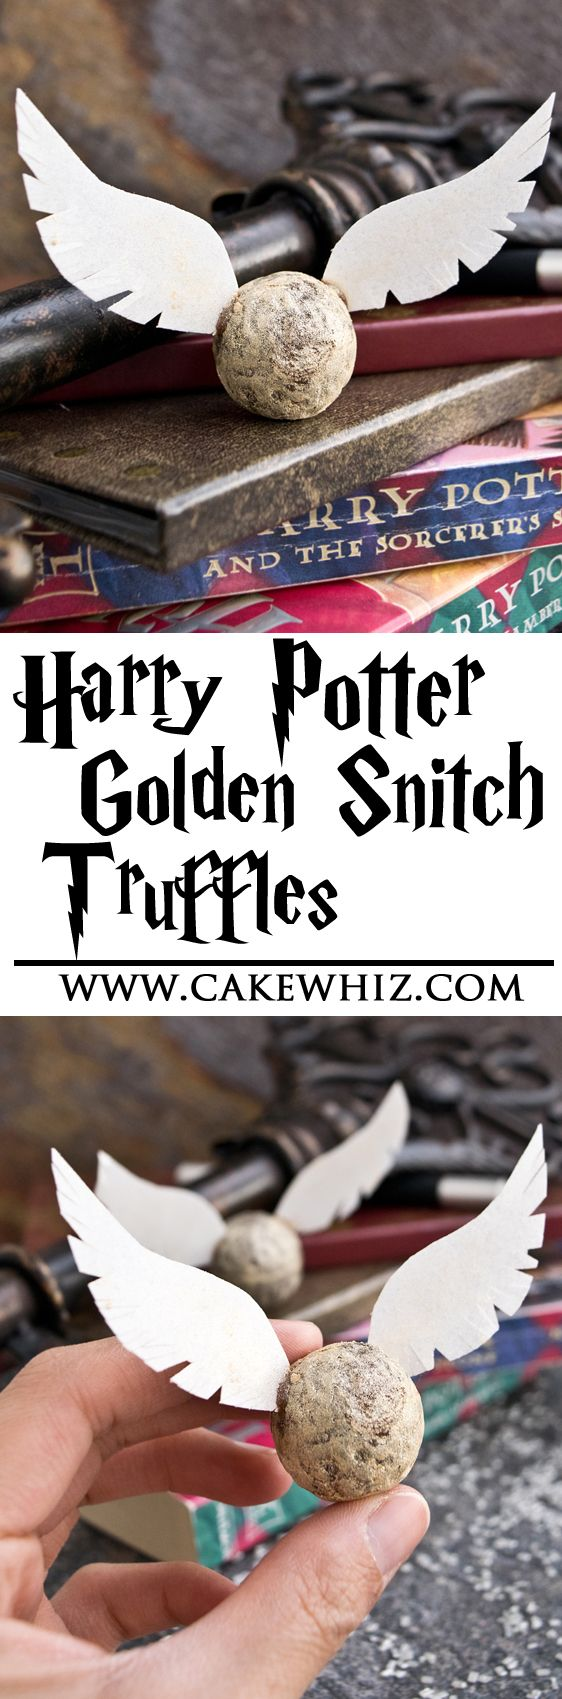 These easy and totally edible GOLDEN SNITCH TRUFFLES are perfect for serving at a Harry Potter party or snacking on, while doing a movie marathon. From cakewhiz.com